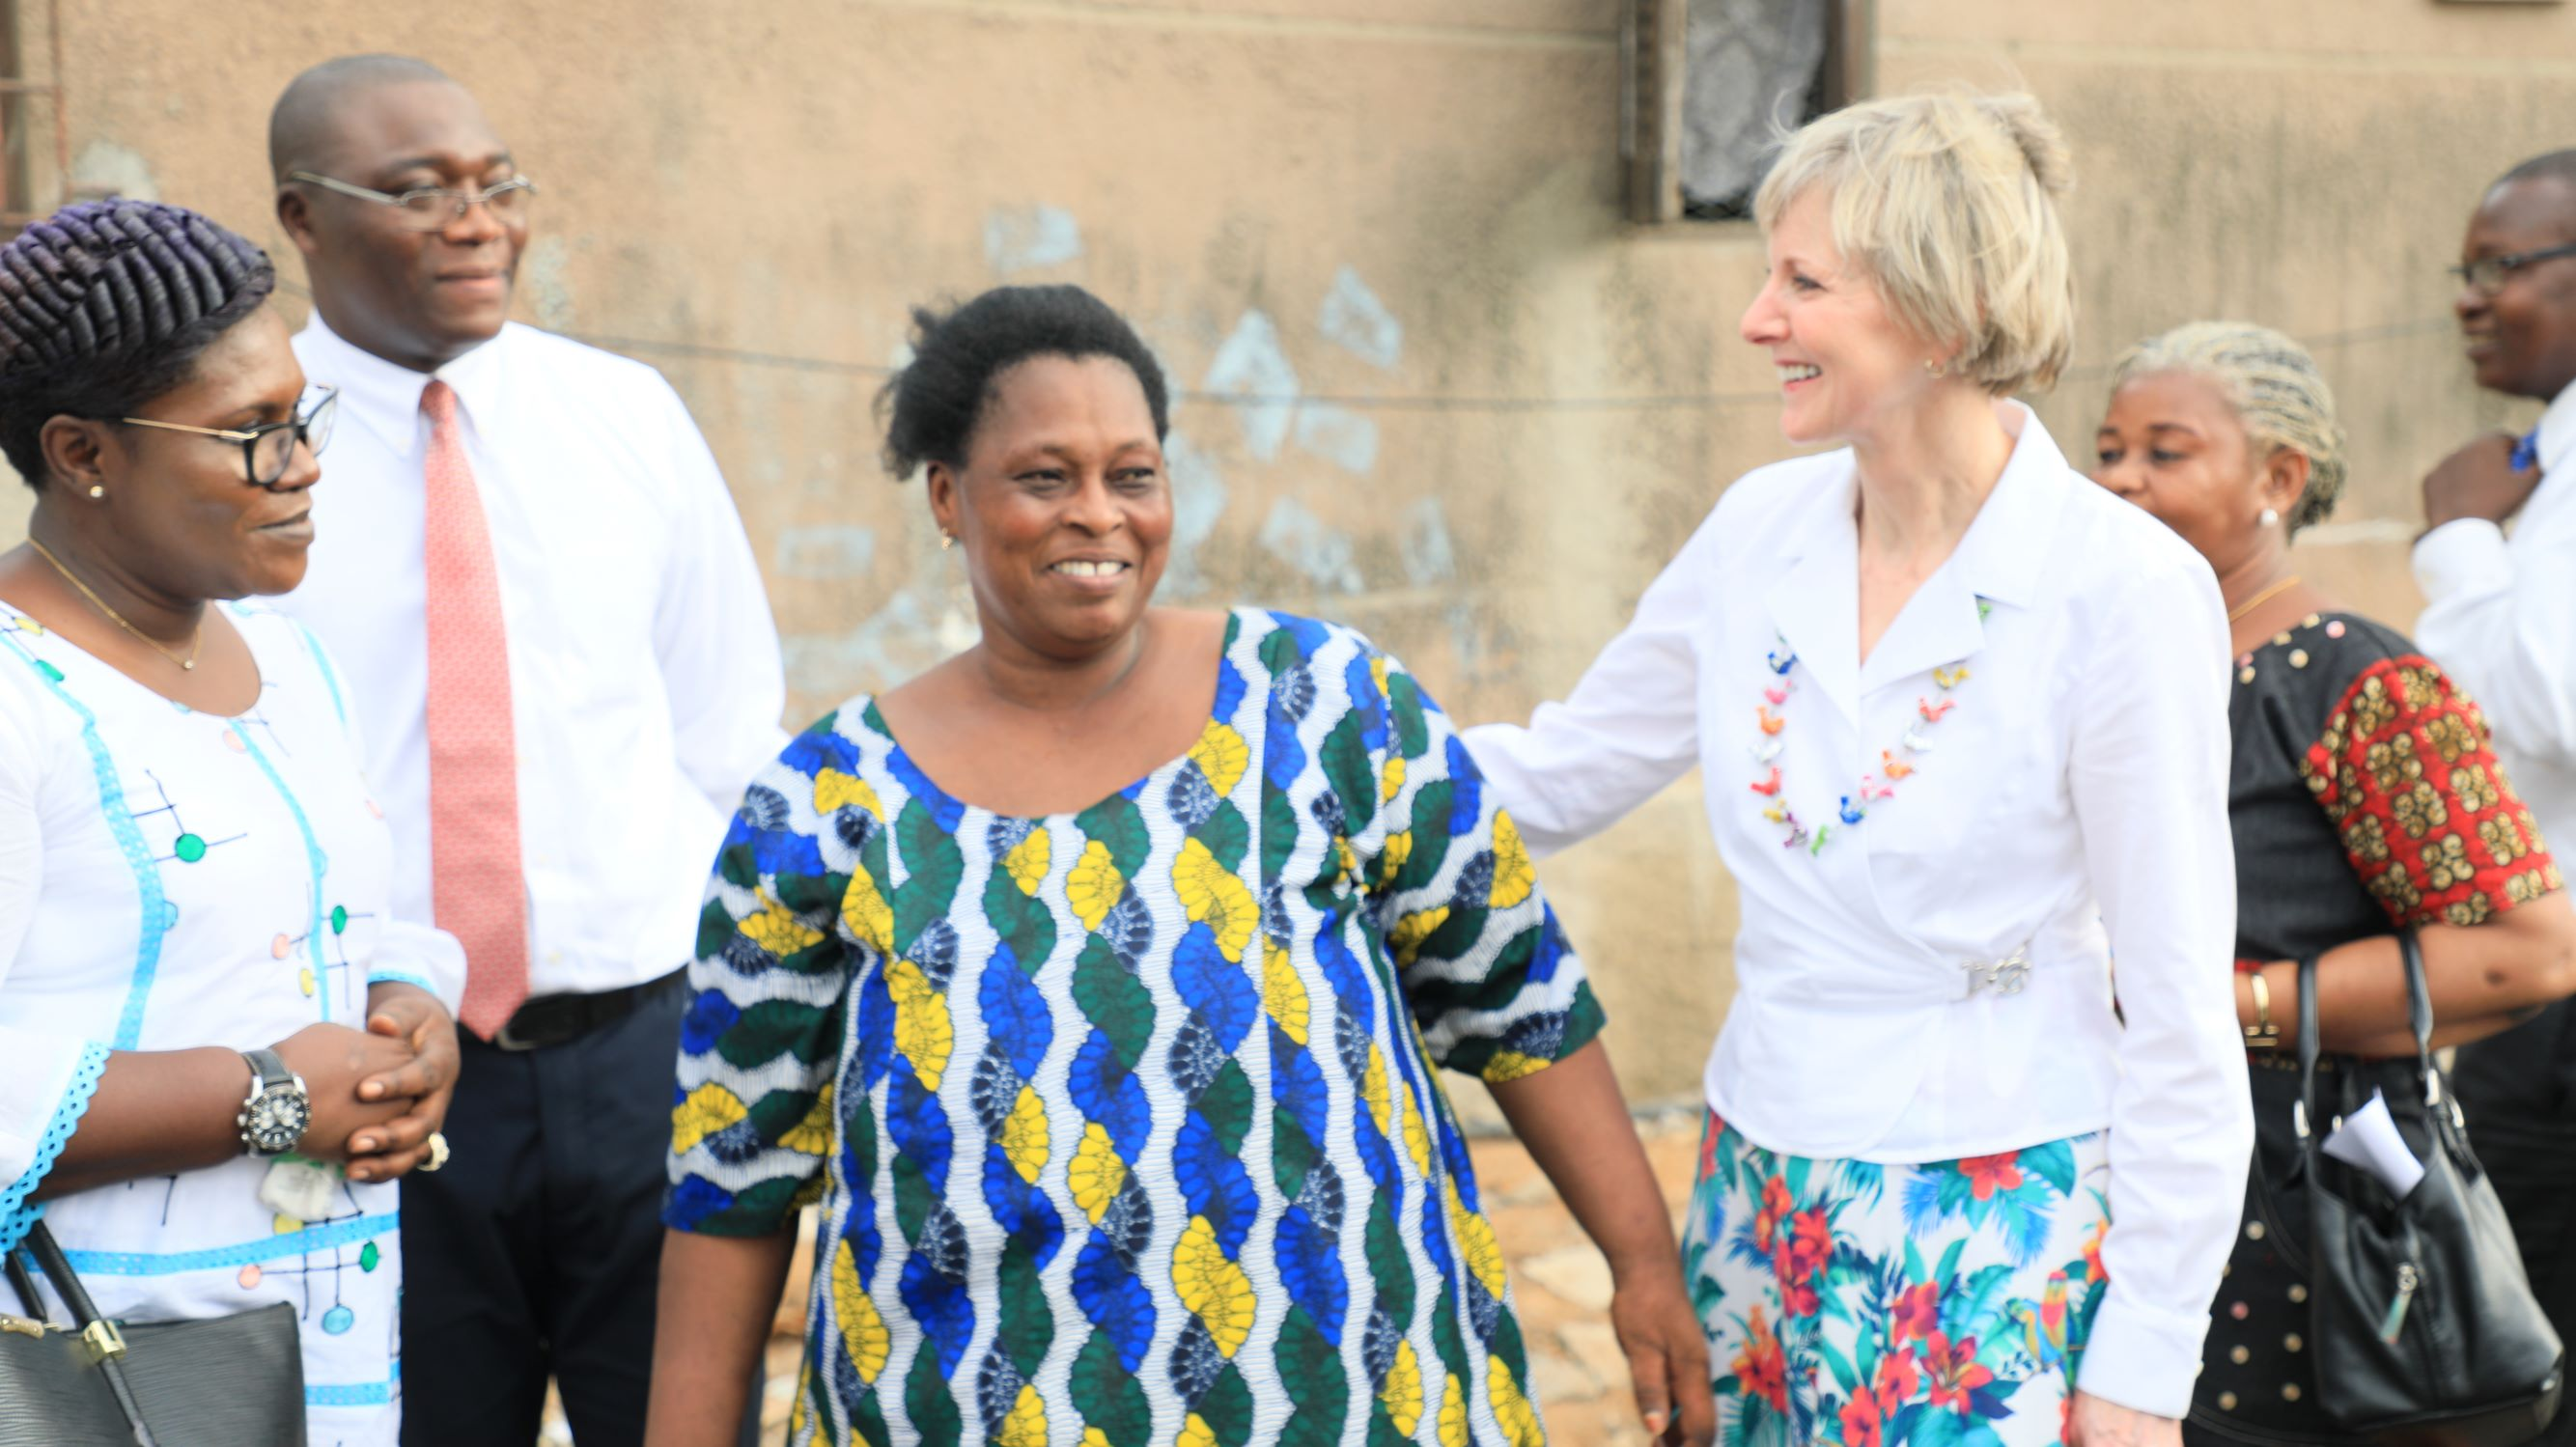 Latter-day Saint leaders in Abidjan, Côte d'Ivoire, accompany Sister Jean B. Bingham, Relief Society general president, on a home visit, Friday, March 8, 2019.